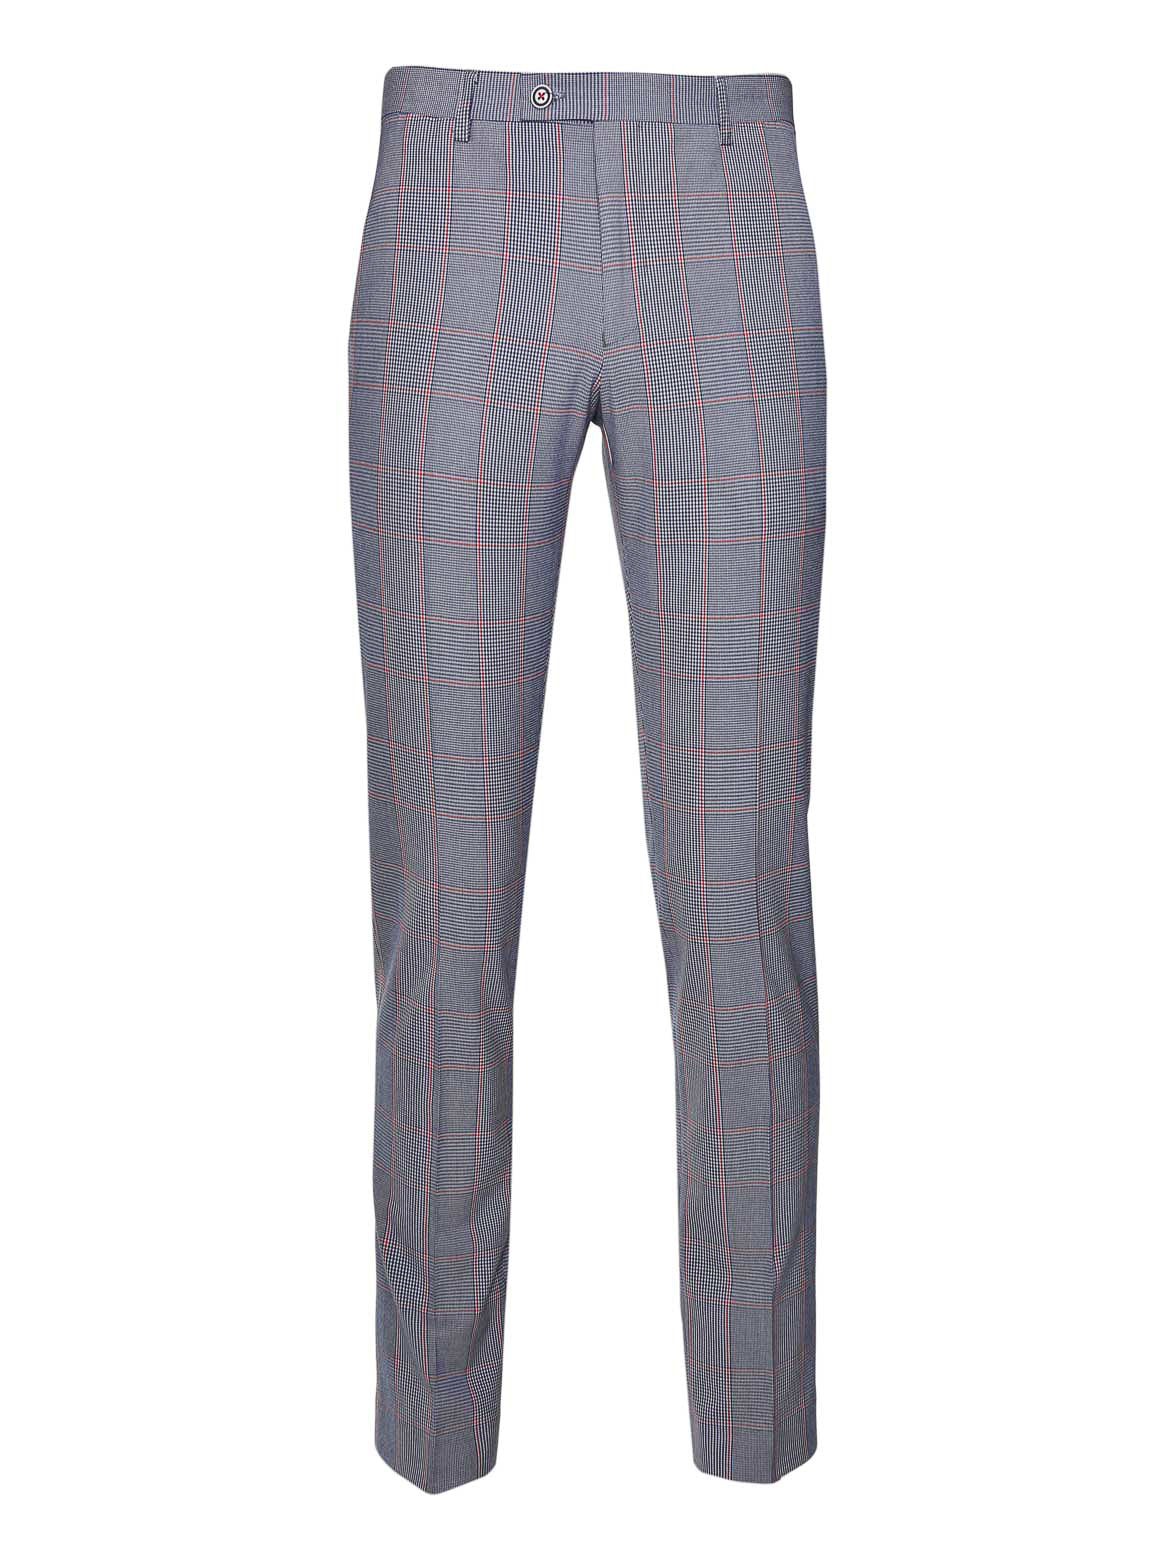 Camden Skinny Fit Pants  - Blue Red Window Plaid